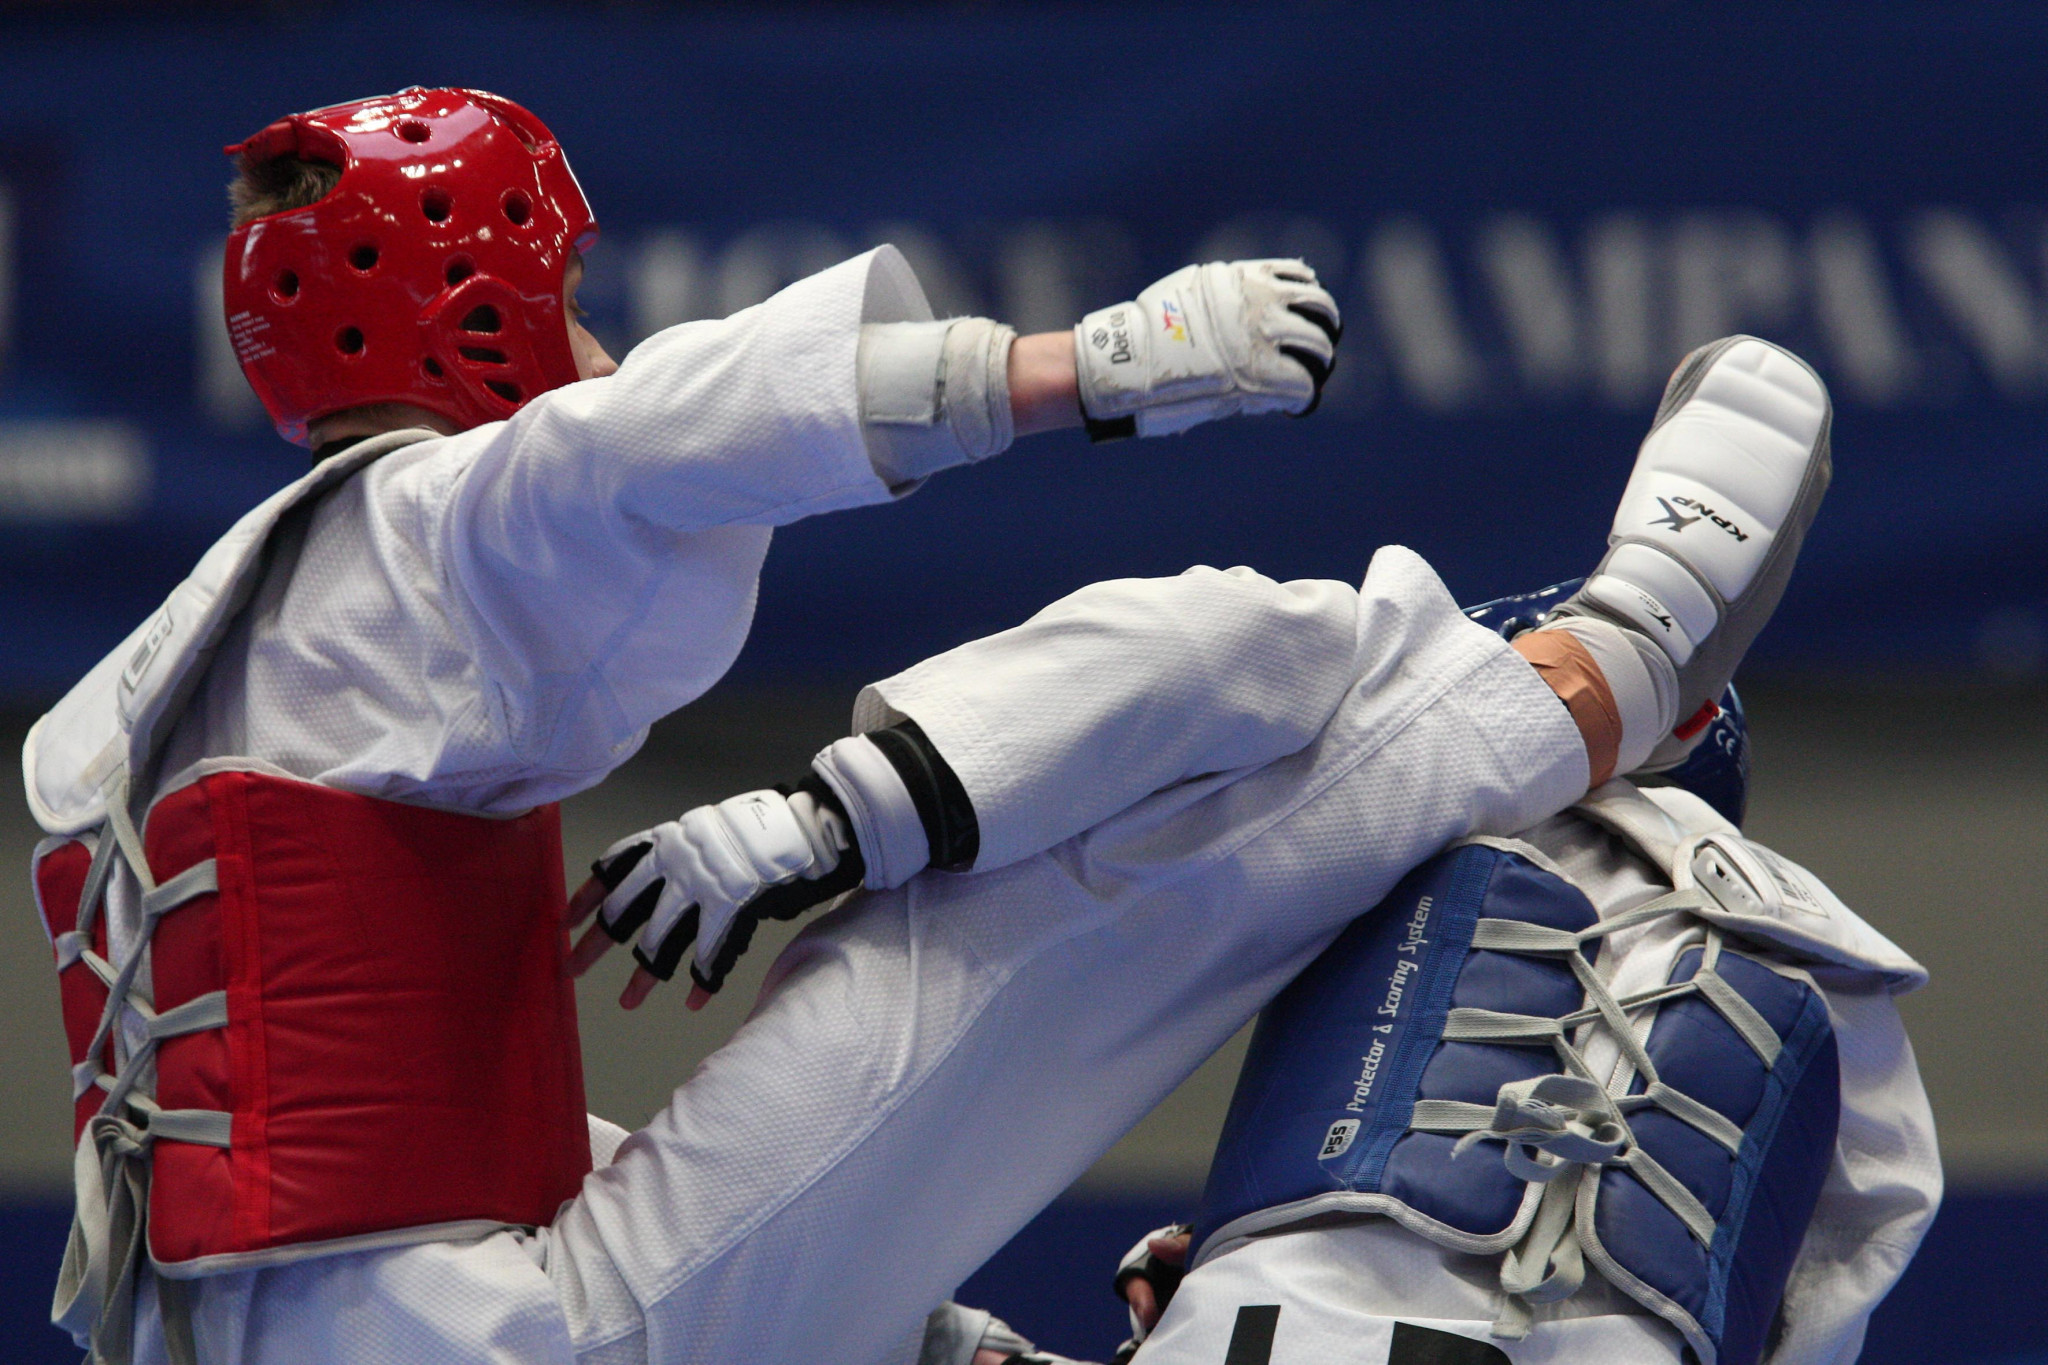 Nafia Kuş was the first Turkish athlete to win, earning gold in the women's under-73 kilograms ©Naples 2019